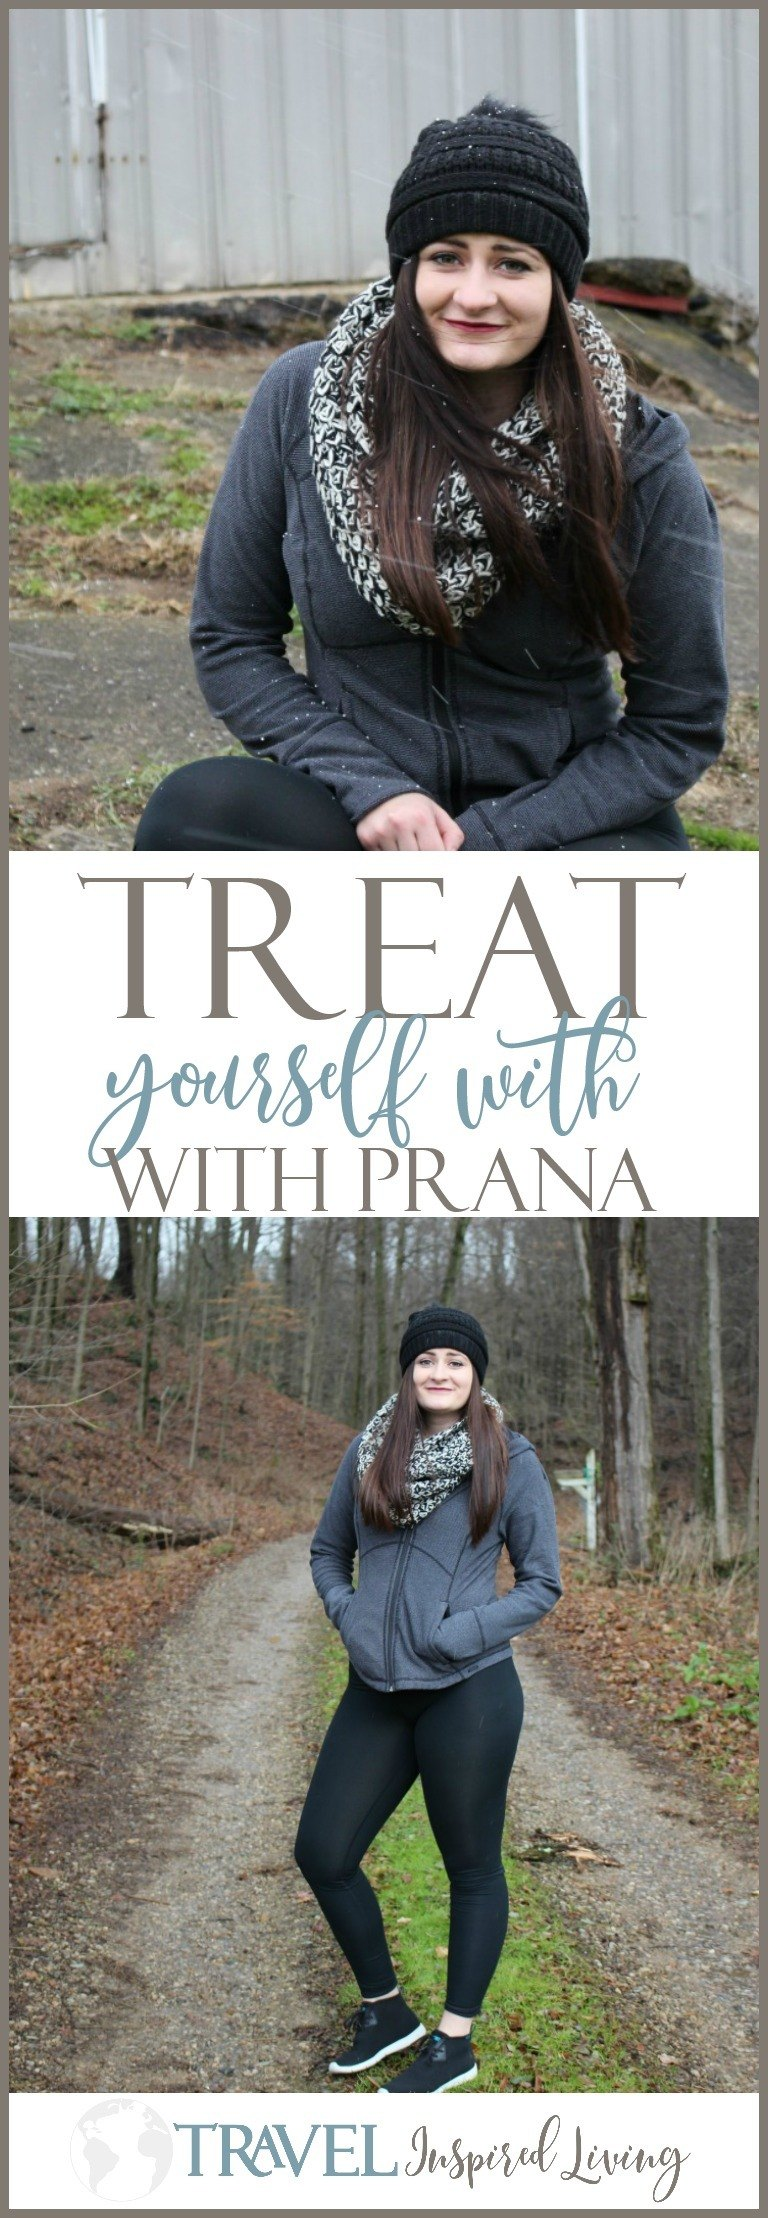 Treat yourself with prAna and save 15 off your purchase with code CMTL17. #giftedprAna